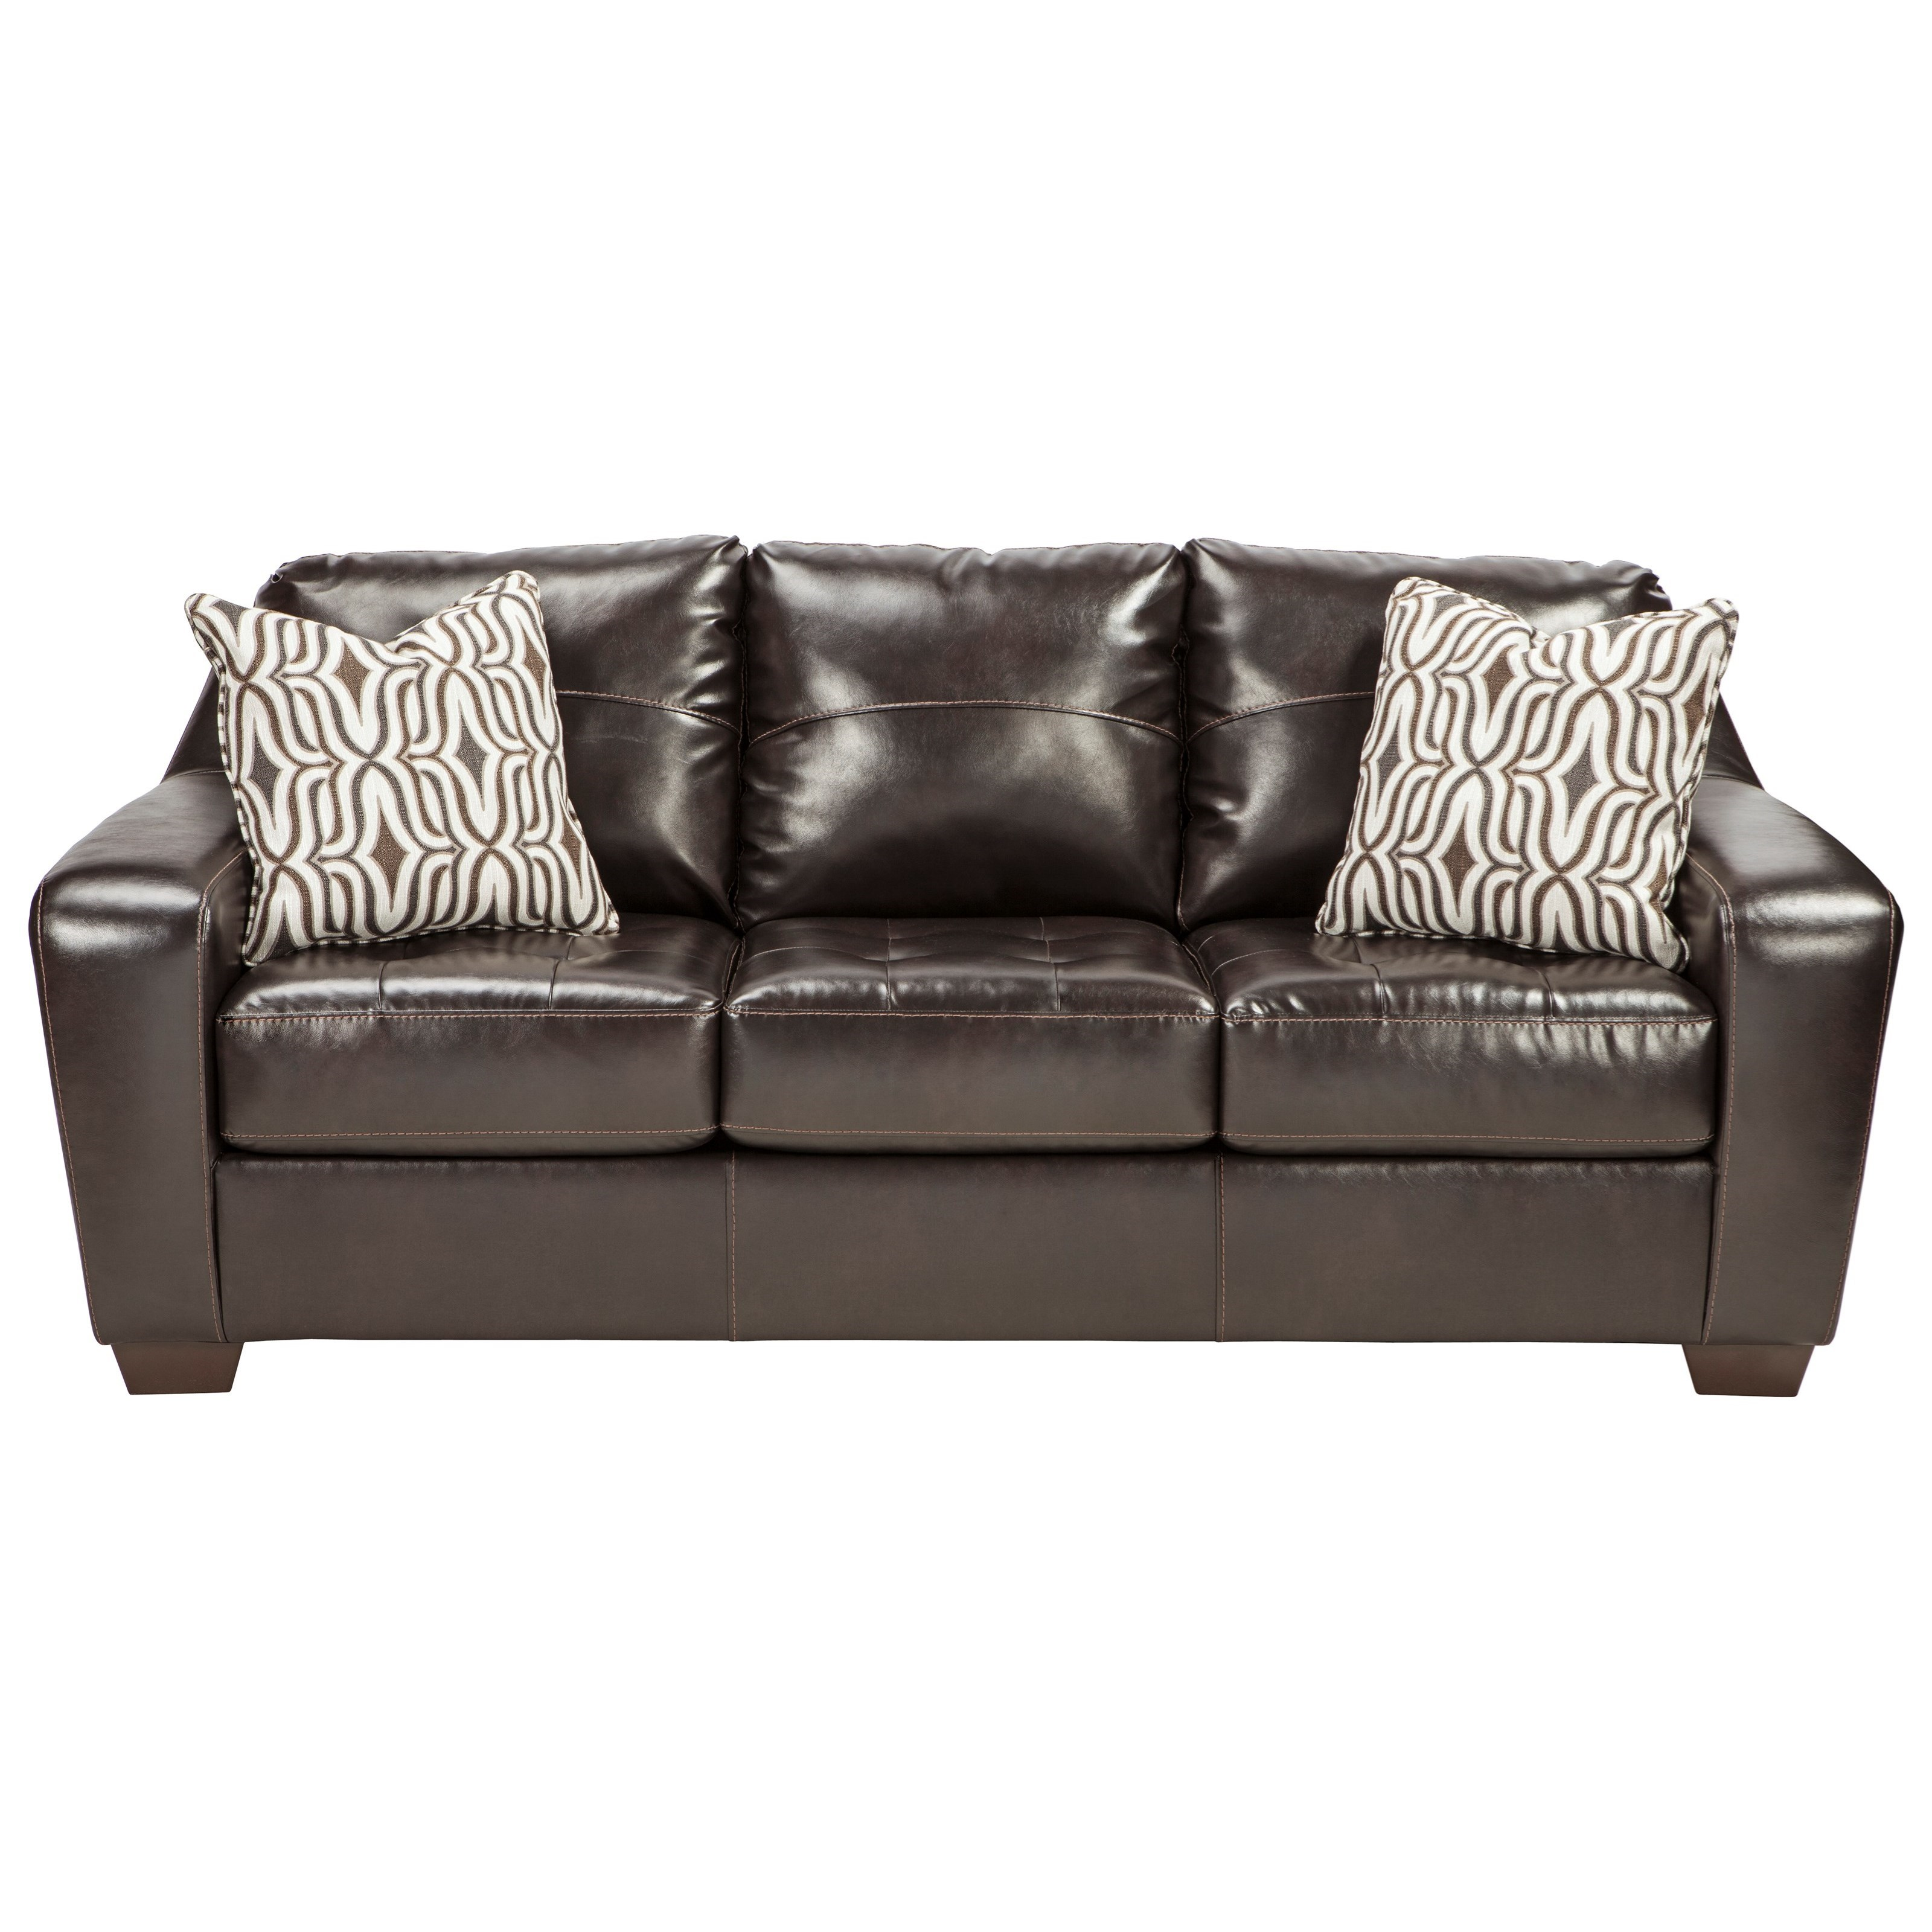 Ashley/Benchcraft Coppell DuraBlend® Queen Sofa Sleeper - Item Number: 5900139